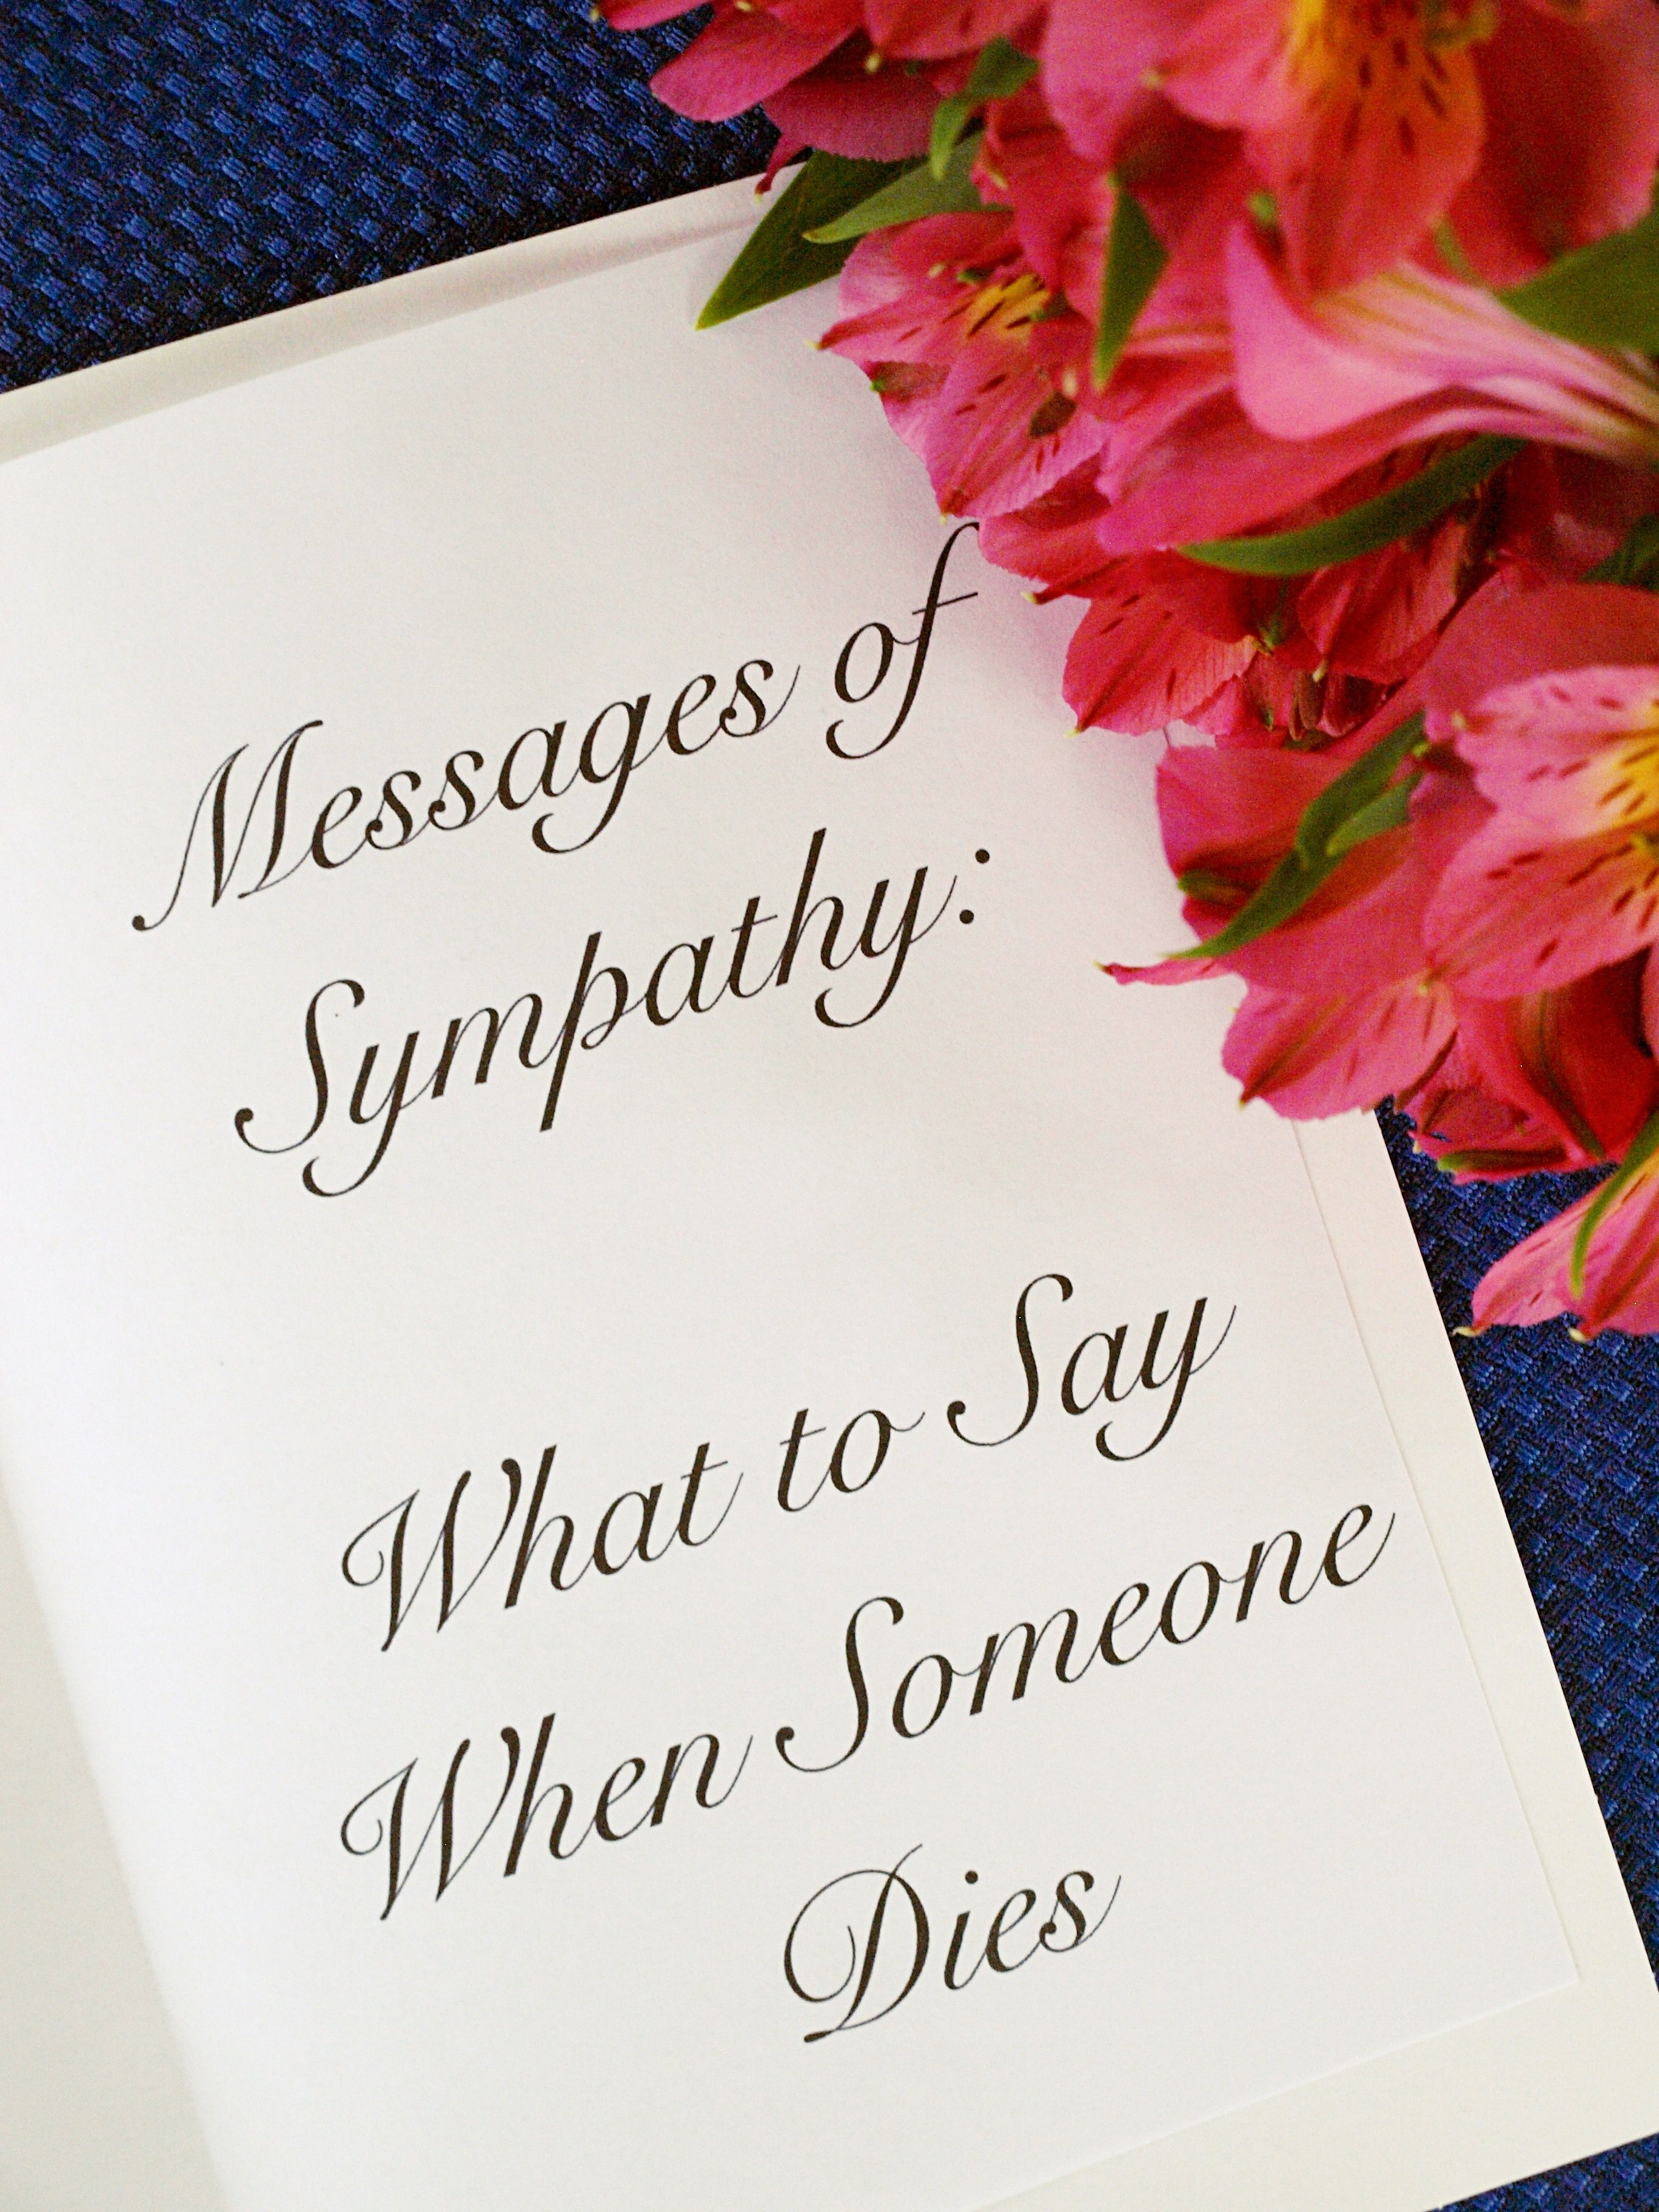 50 Messages Of Sympathy What To Say When Someone Dies Sympathy